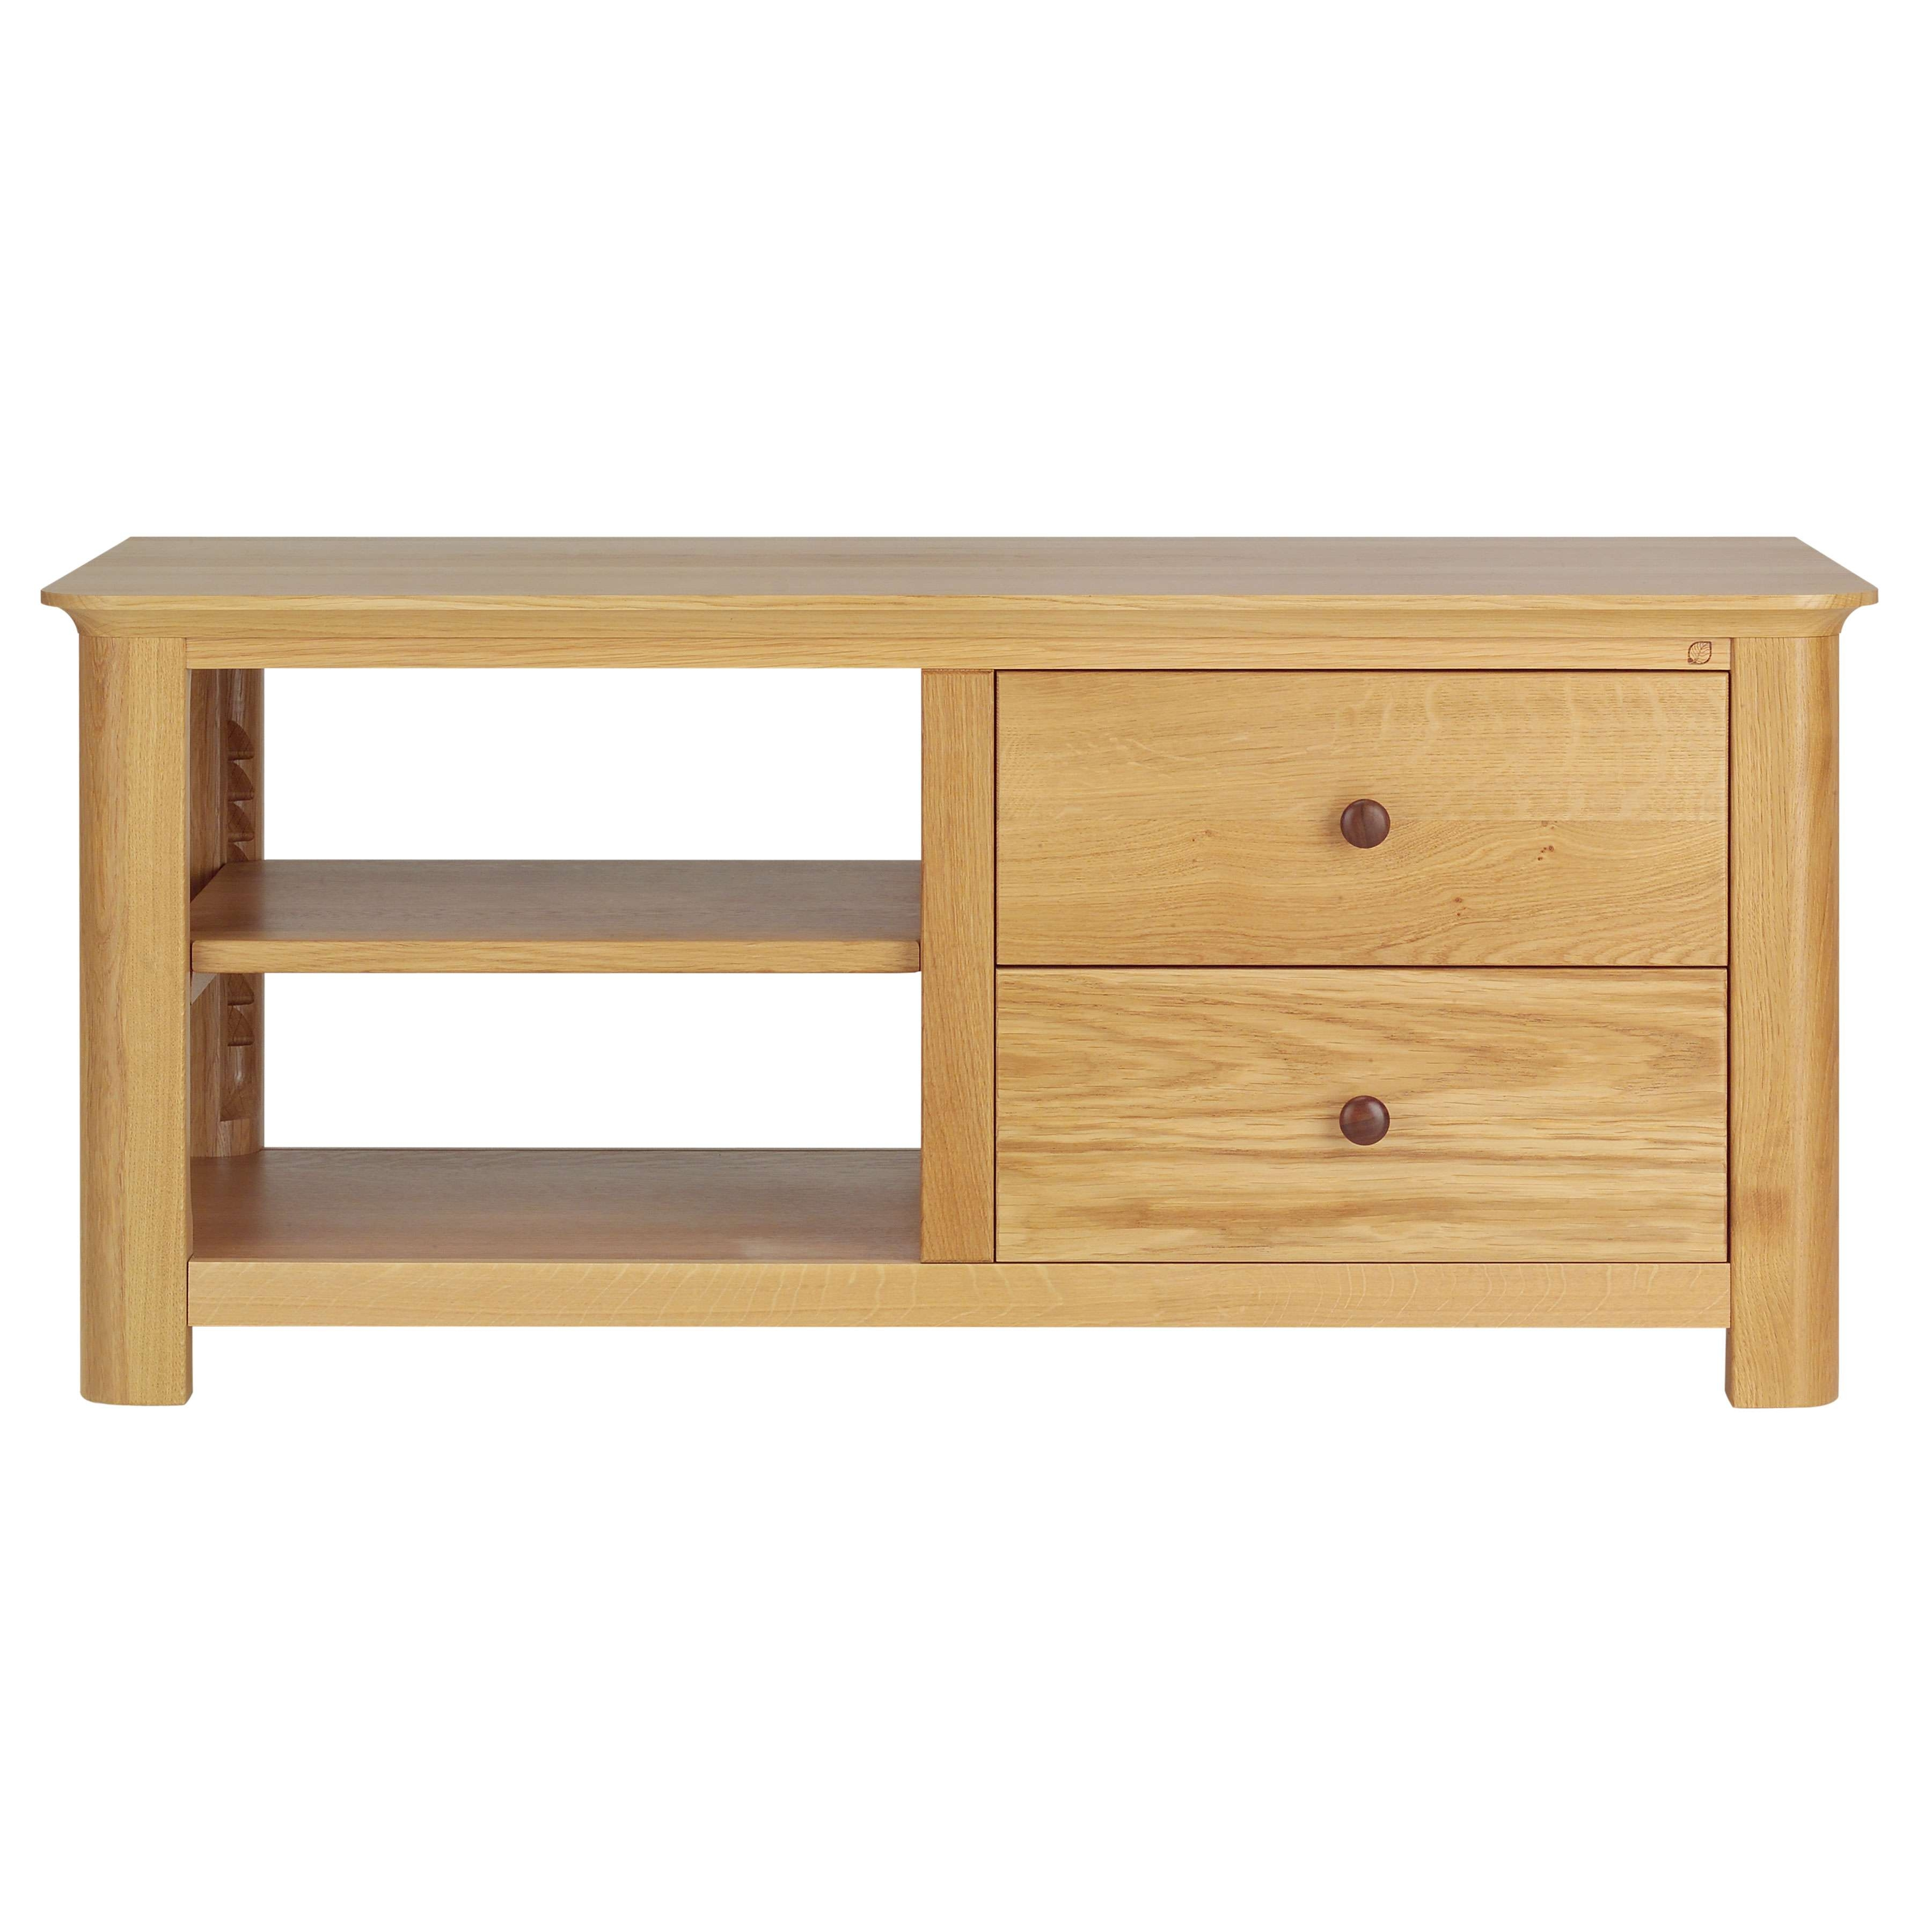 Small Tv Cabinet | Eo Furniture Pertaining To Small Tv Cabinets (View 7 of 20)